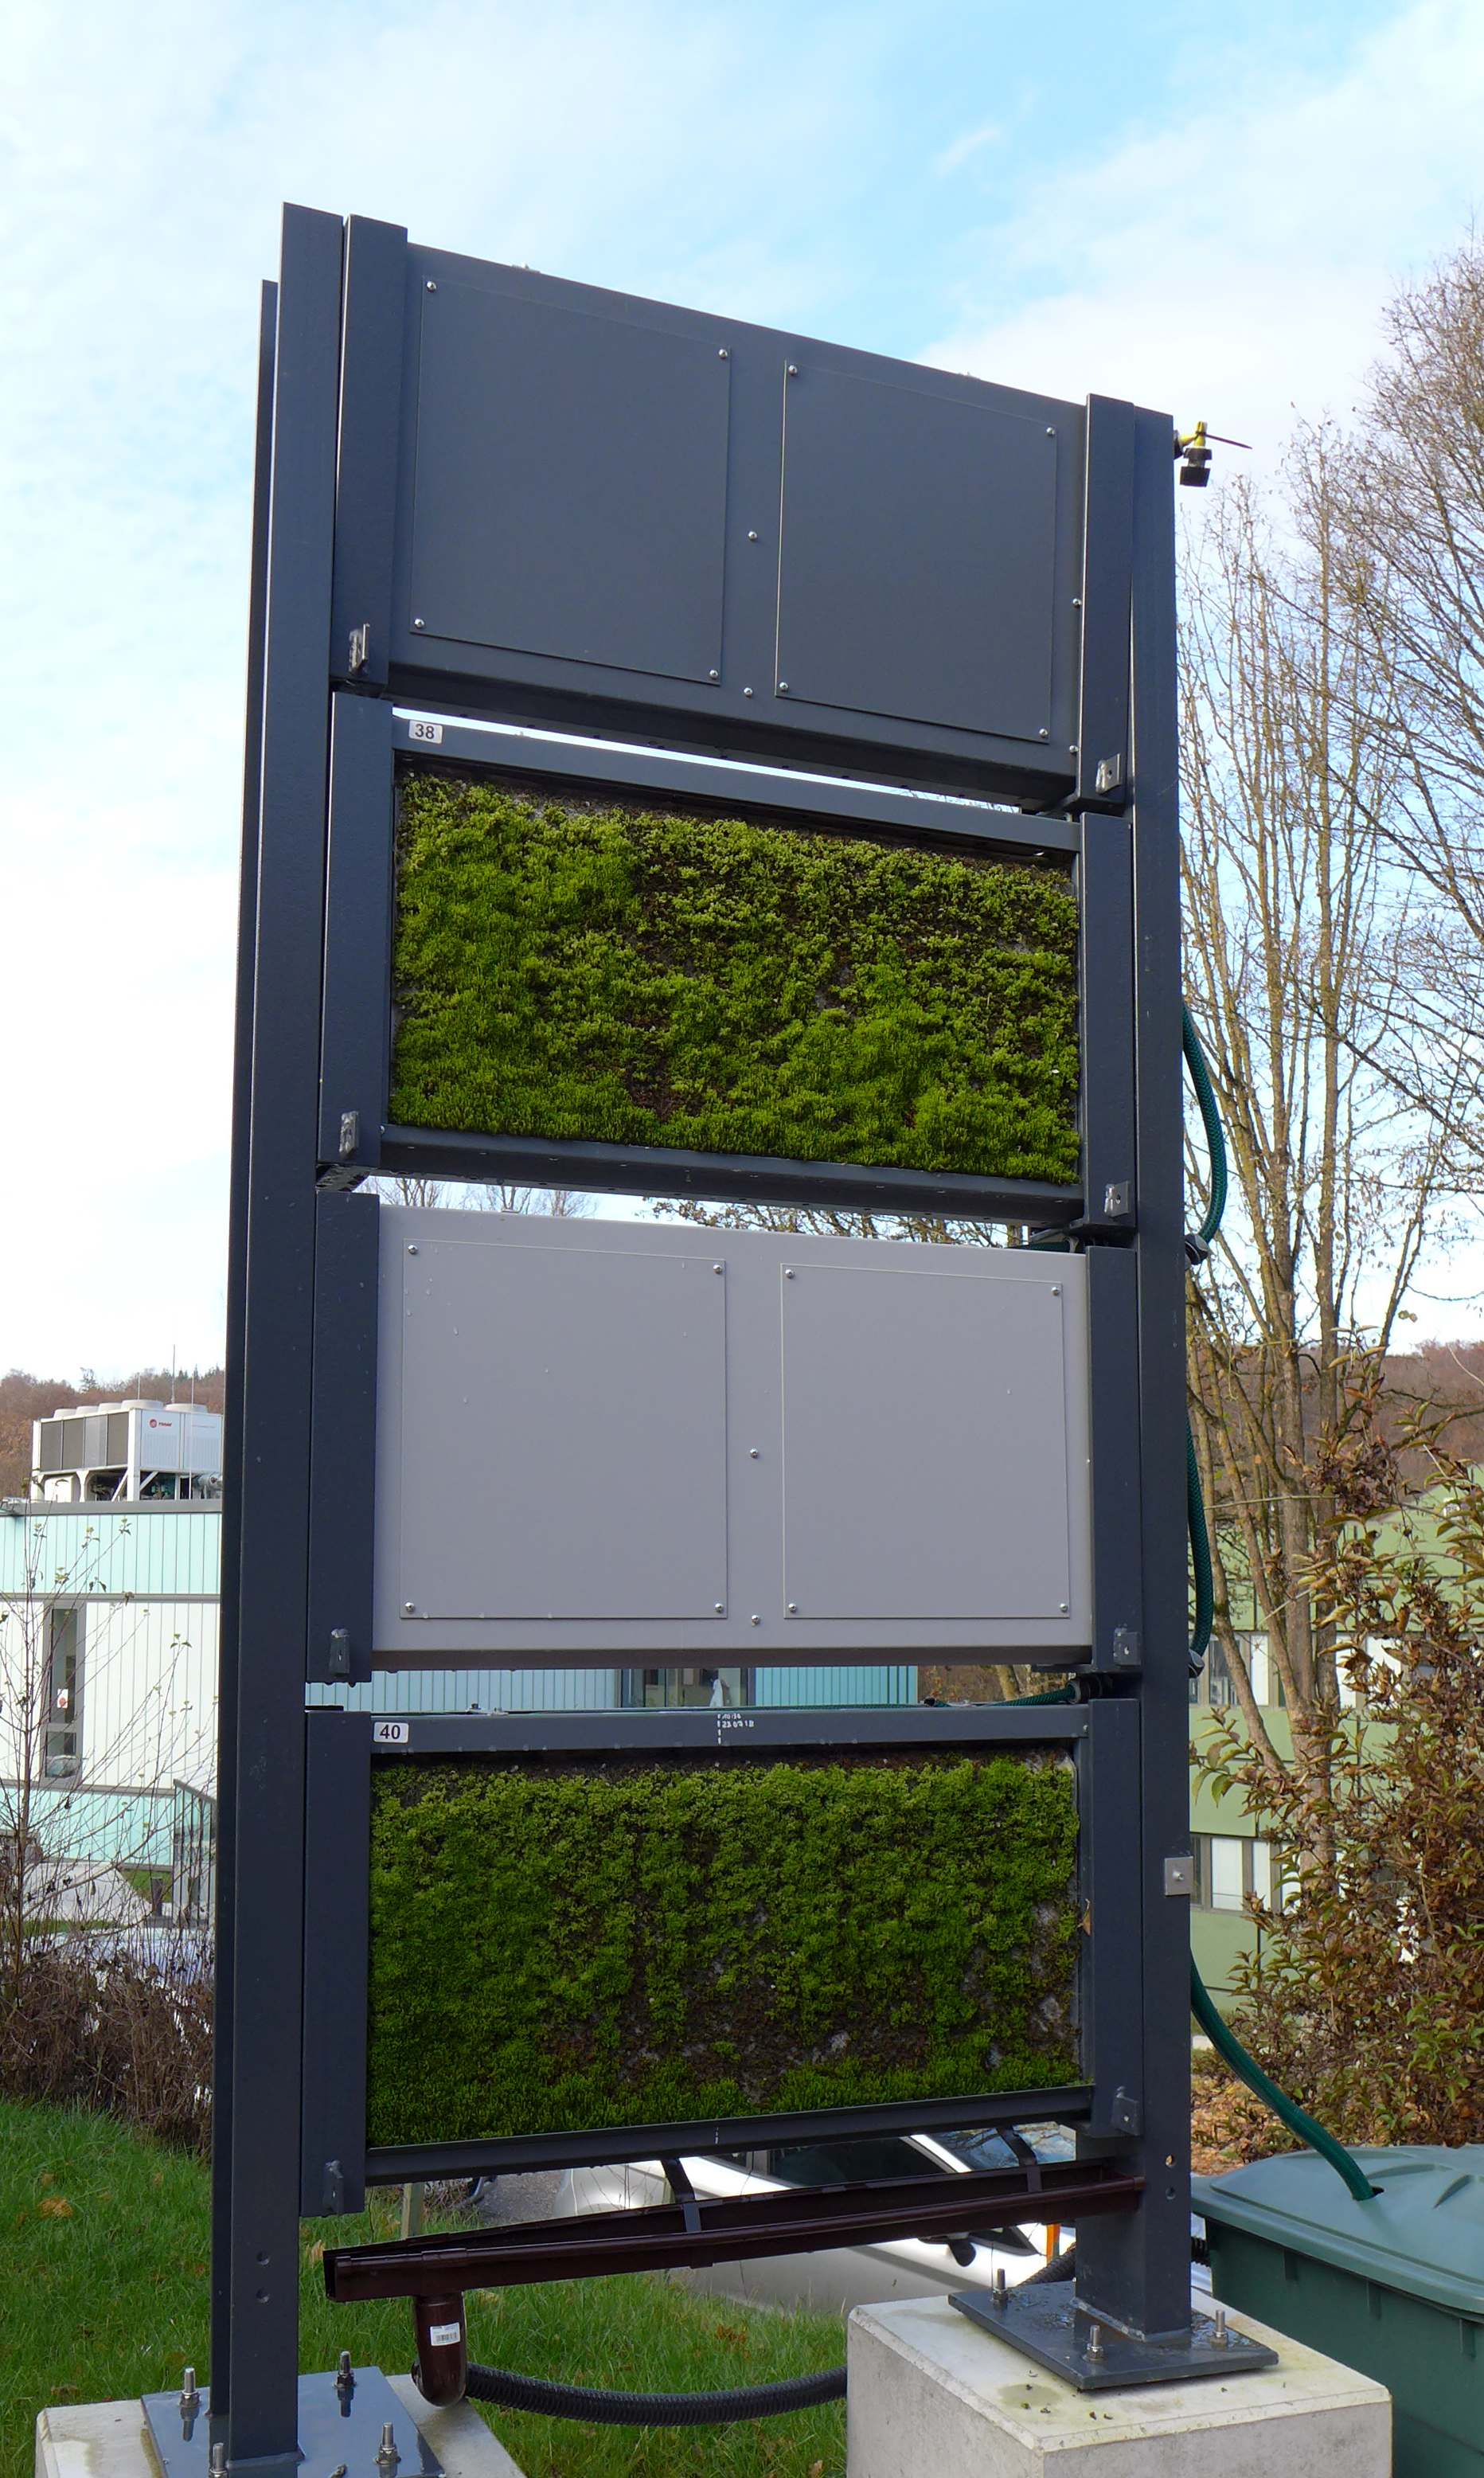 Modular moss wall: MoosTex test structure at the DITF in Denkendorf. Photo: DITF